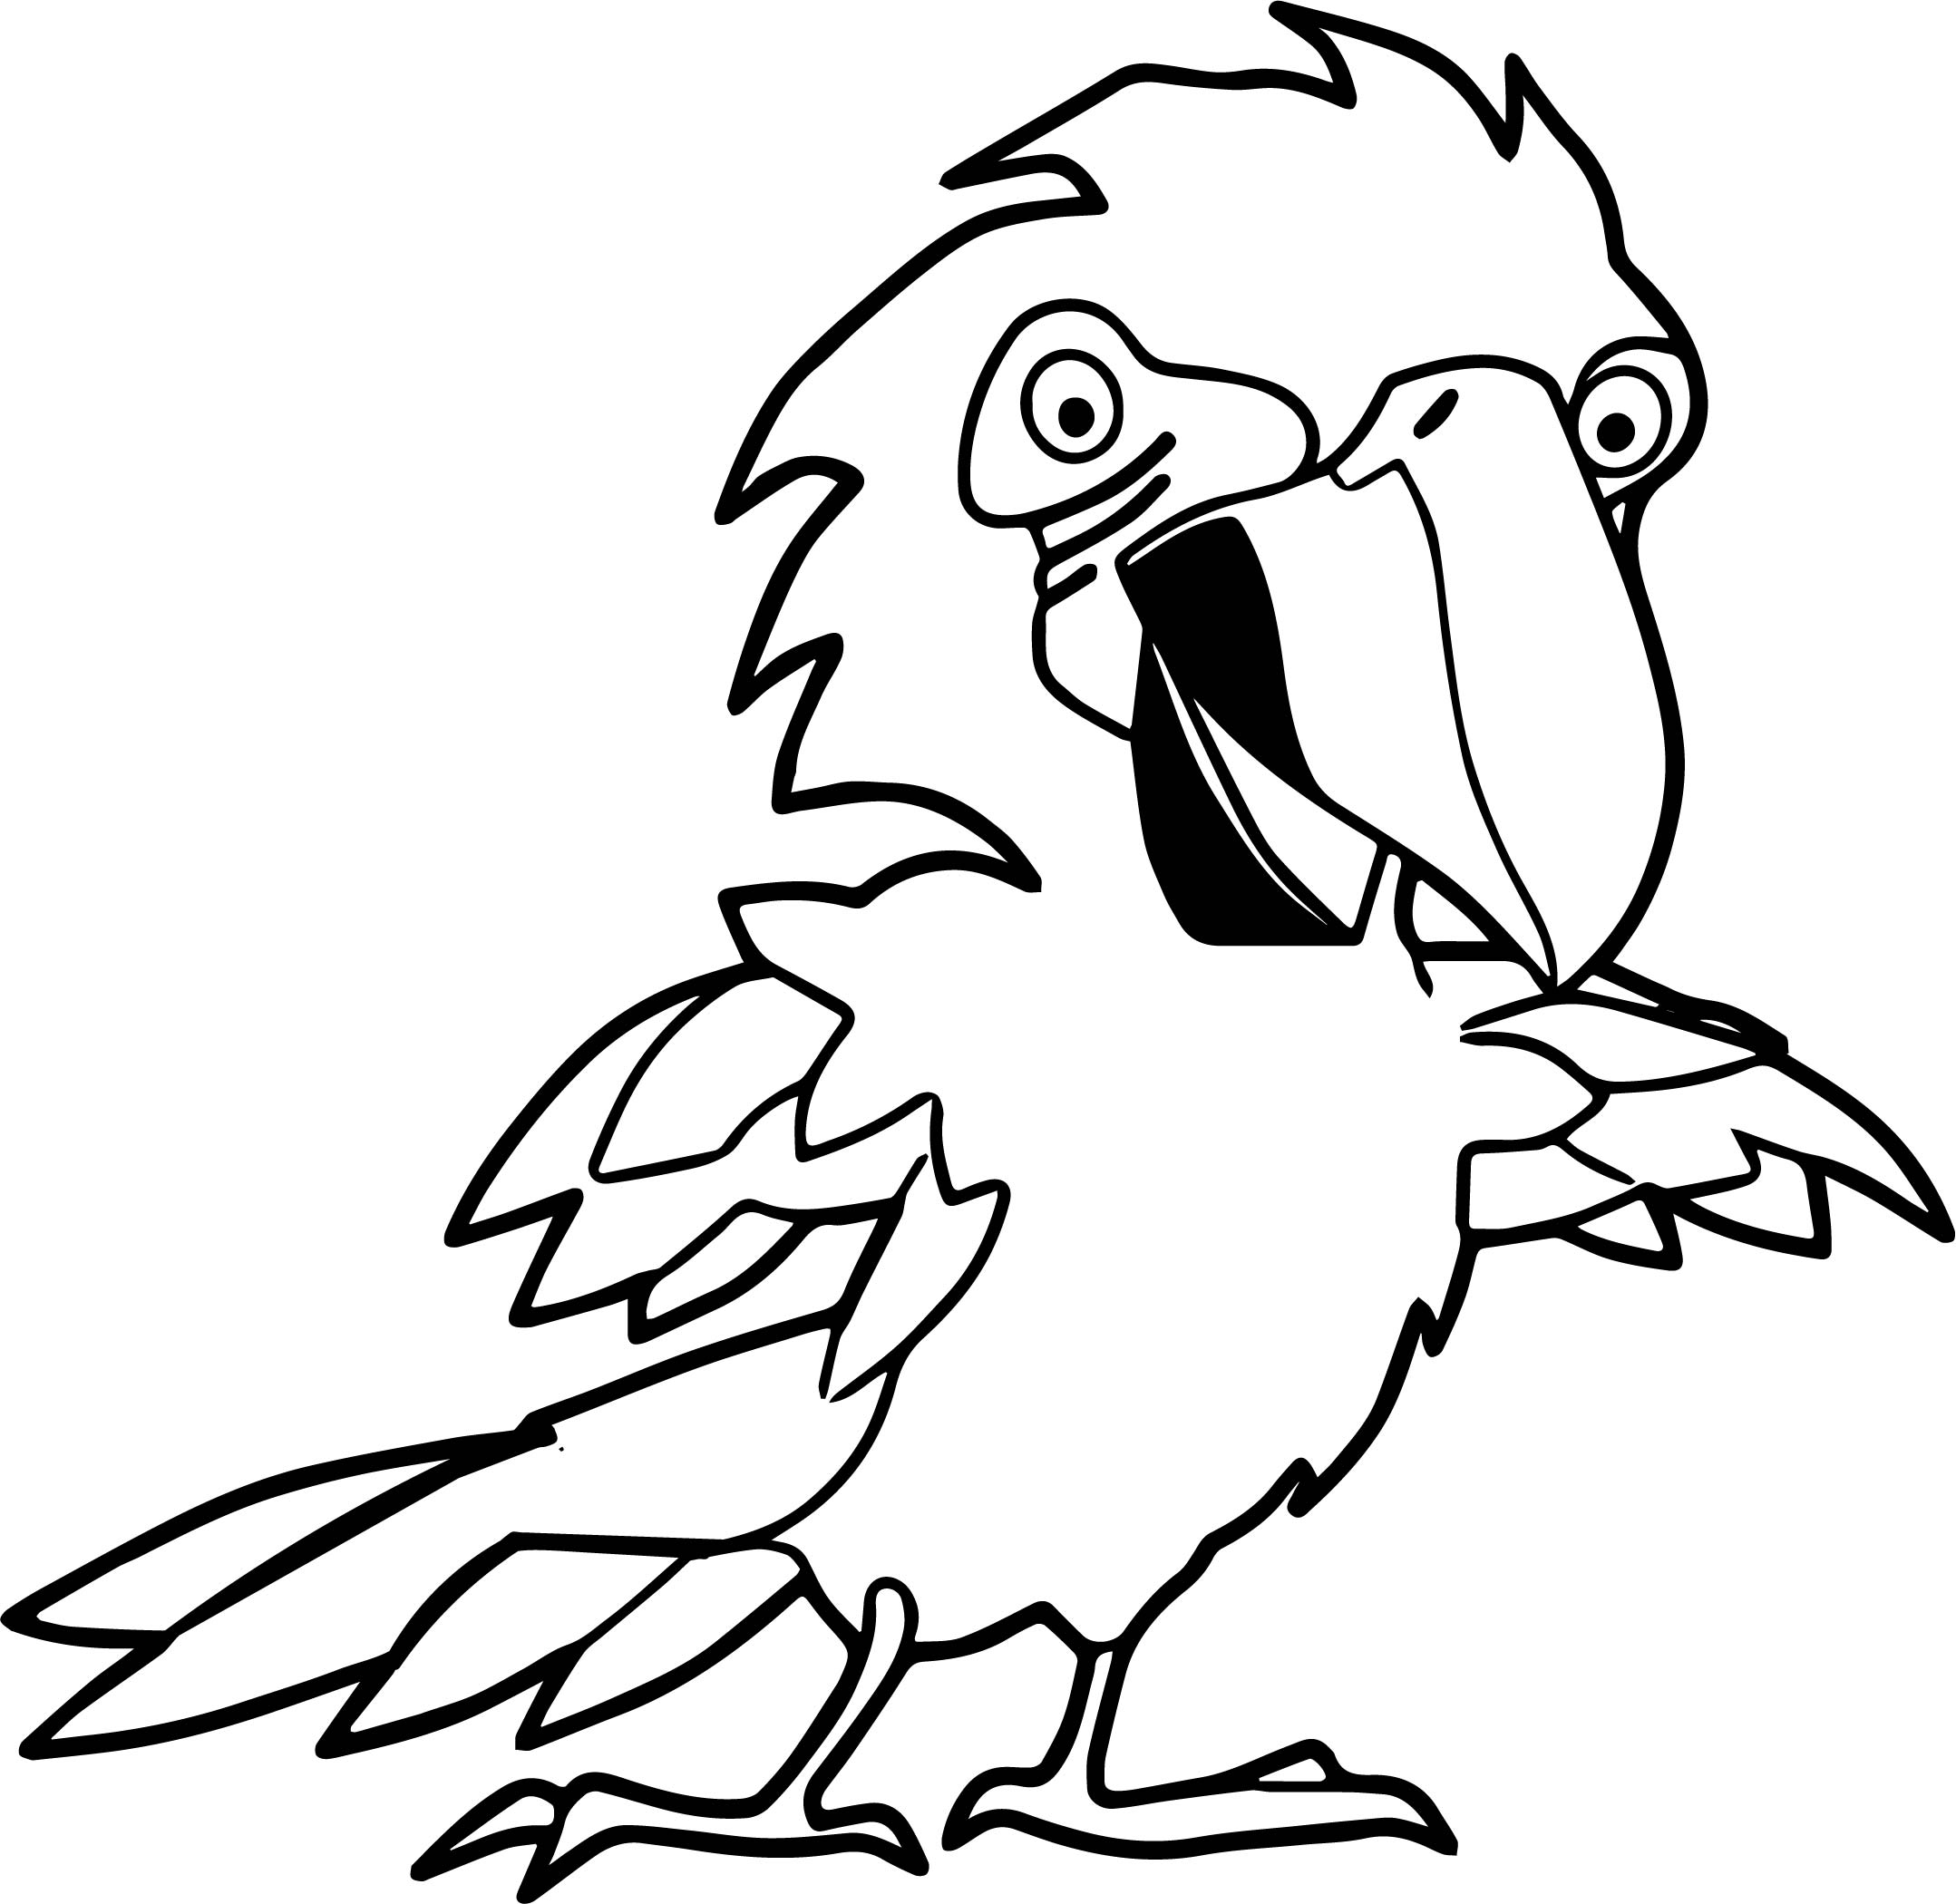 Parrot Coloring Page 081 Wecoloringpage Com